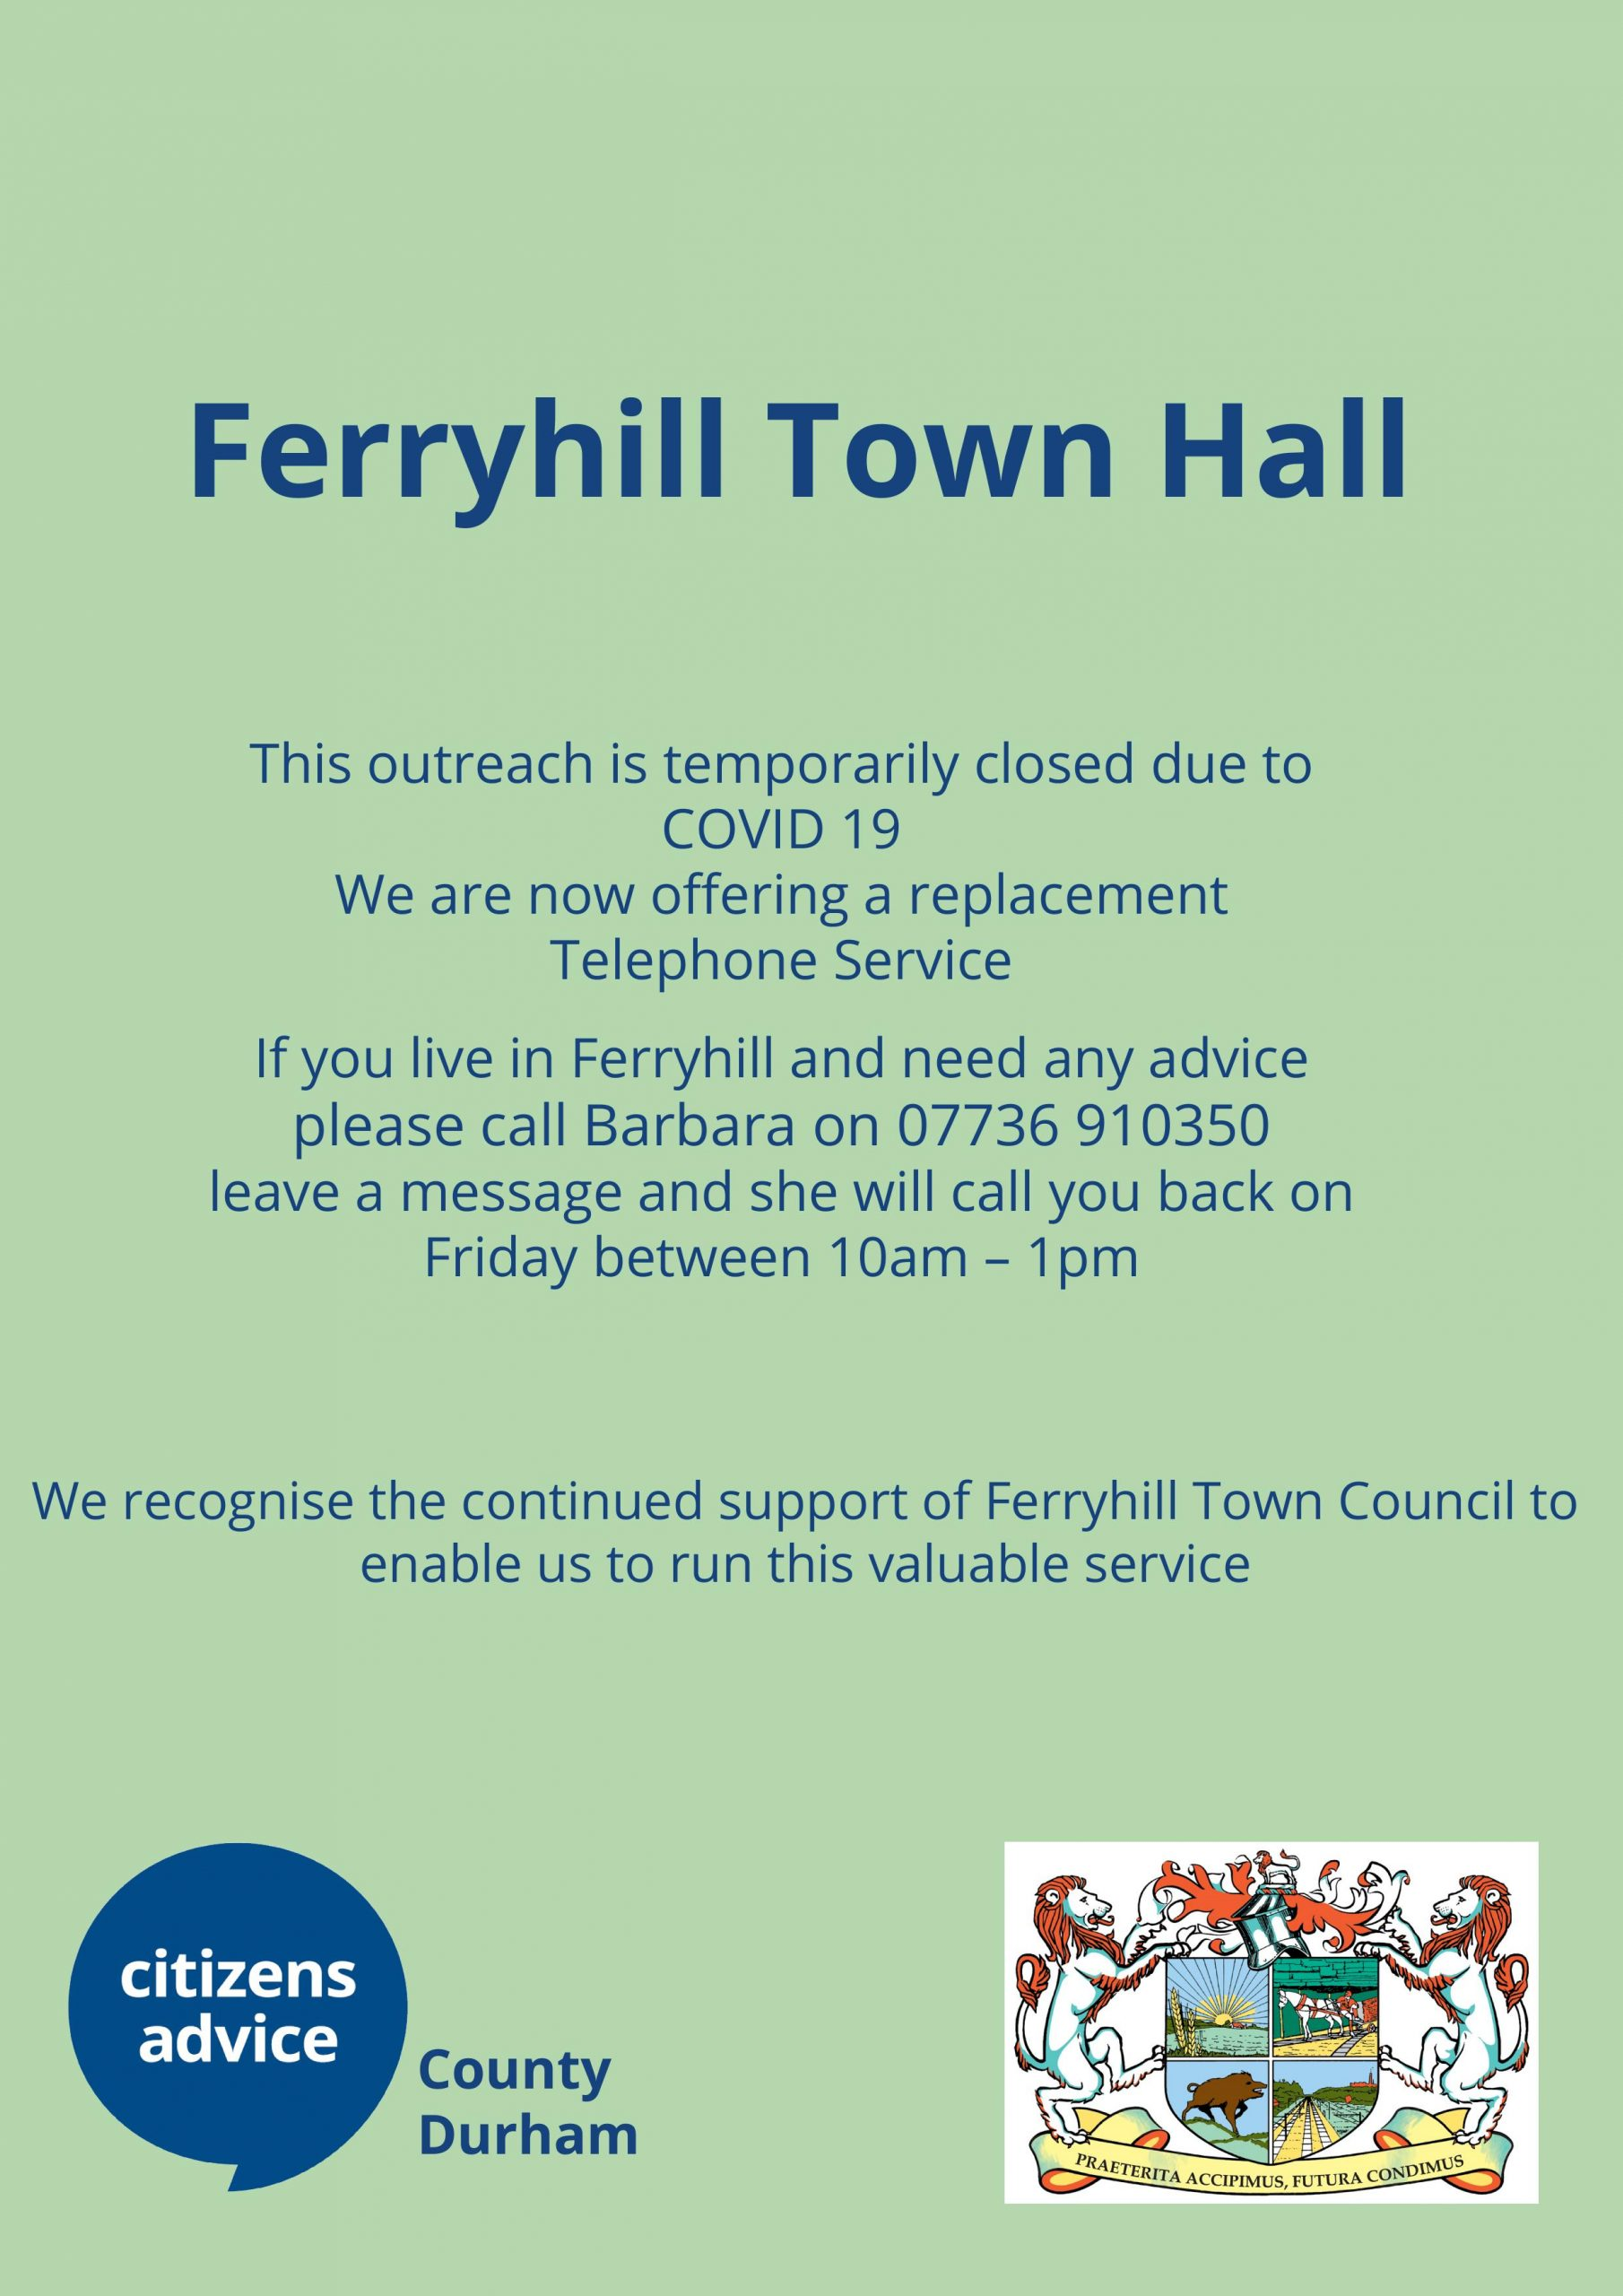 Ferryhill Town Council Outreach service